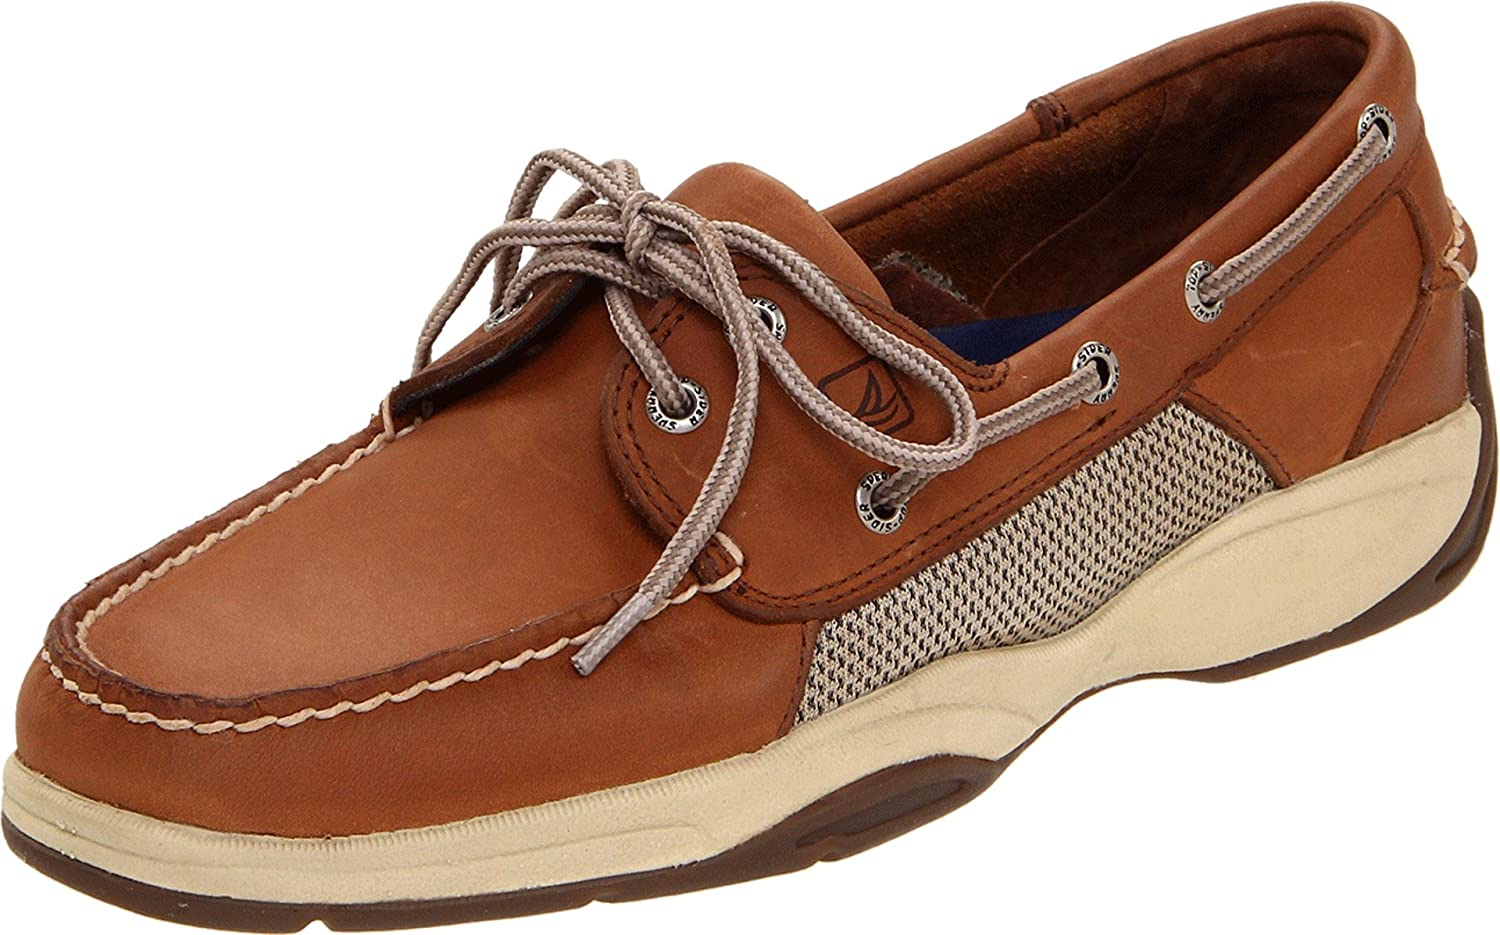 Sperry Men's, Intrepid 2 Eye Boat shoes